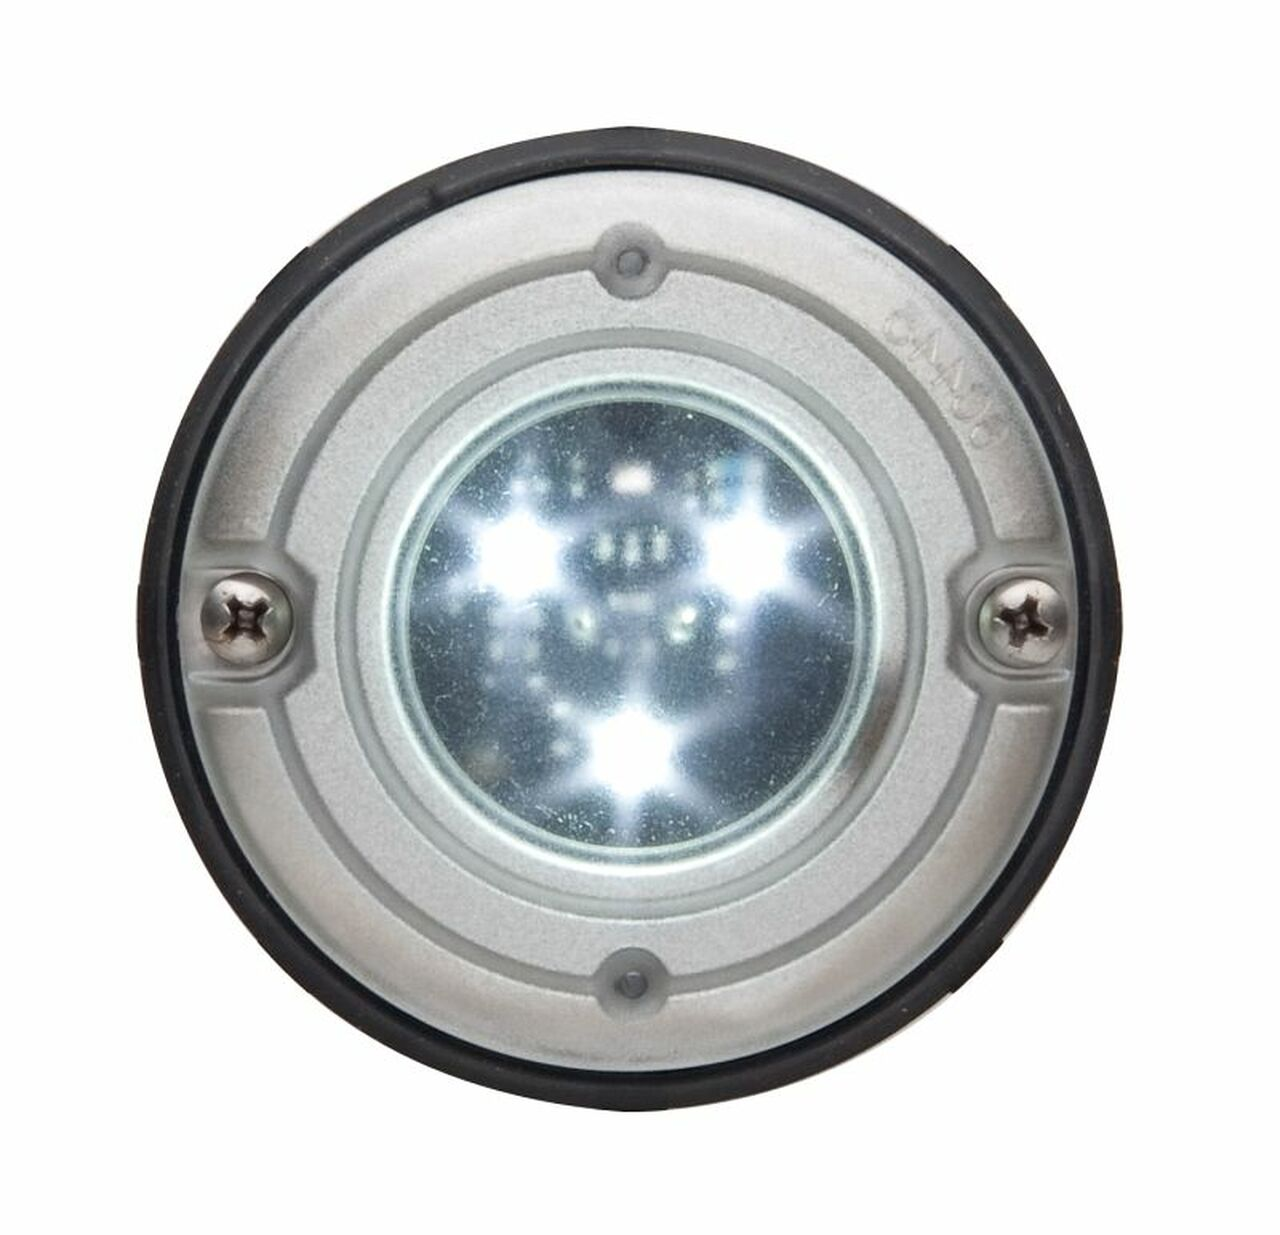 Whelen 3 inch Round Super-LED Lighthead Compartment Light